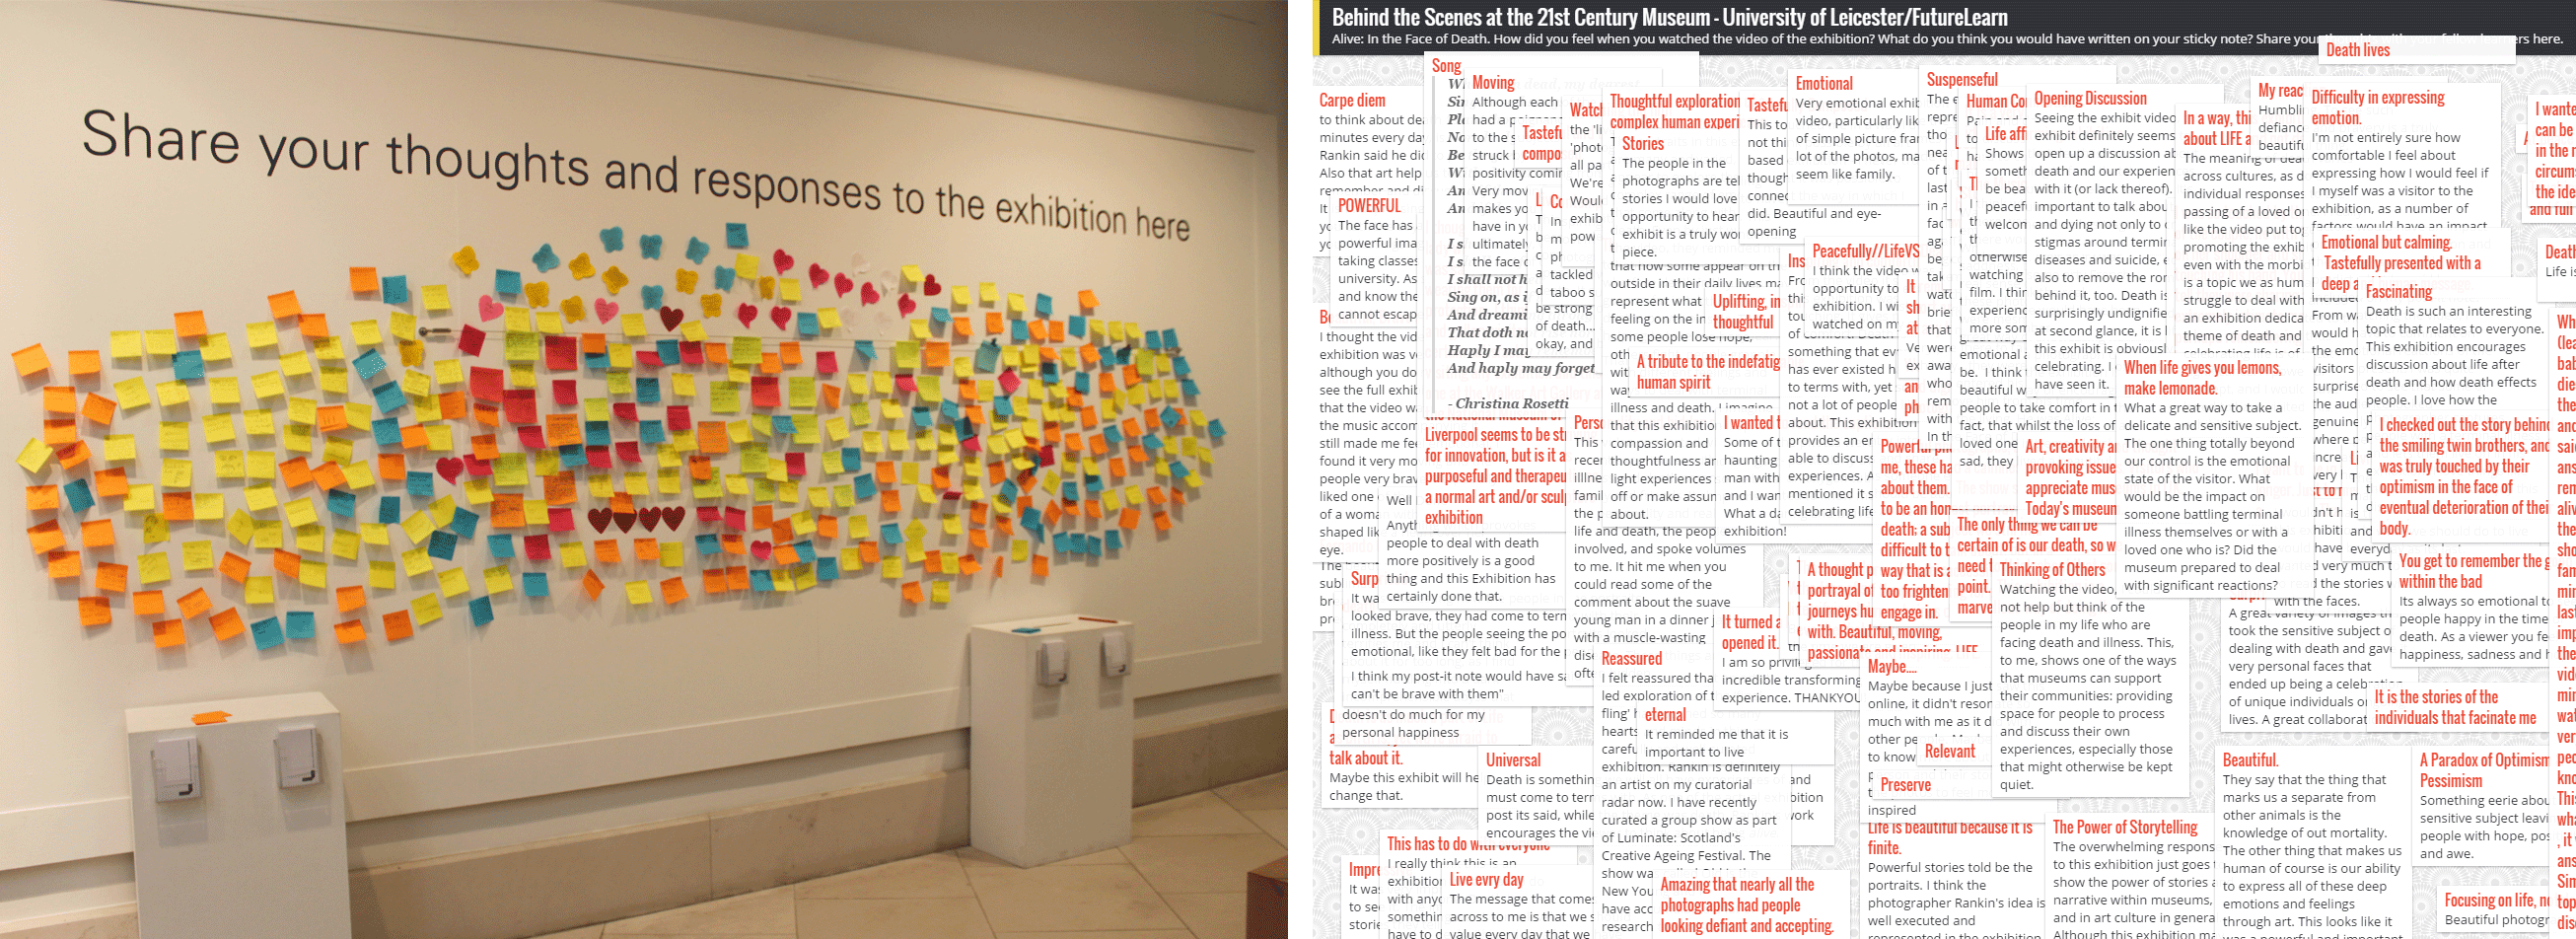 Image showing the MOOC 'online wall' of participants comments mirroring the 'physical wall' of visitor comments at the Walker Art Gallery, Liverpool.